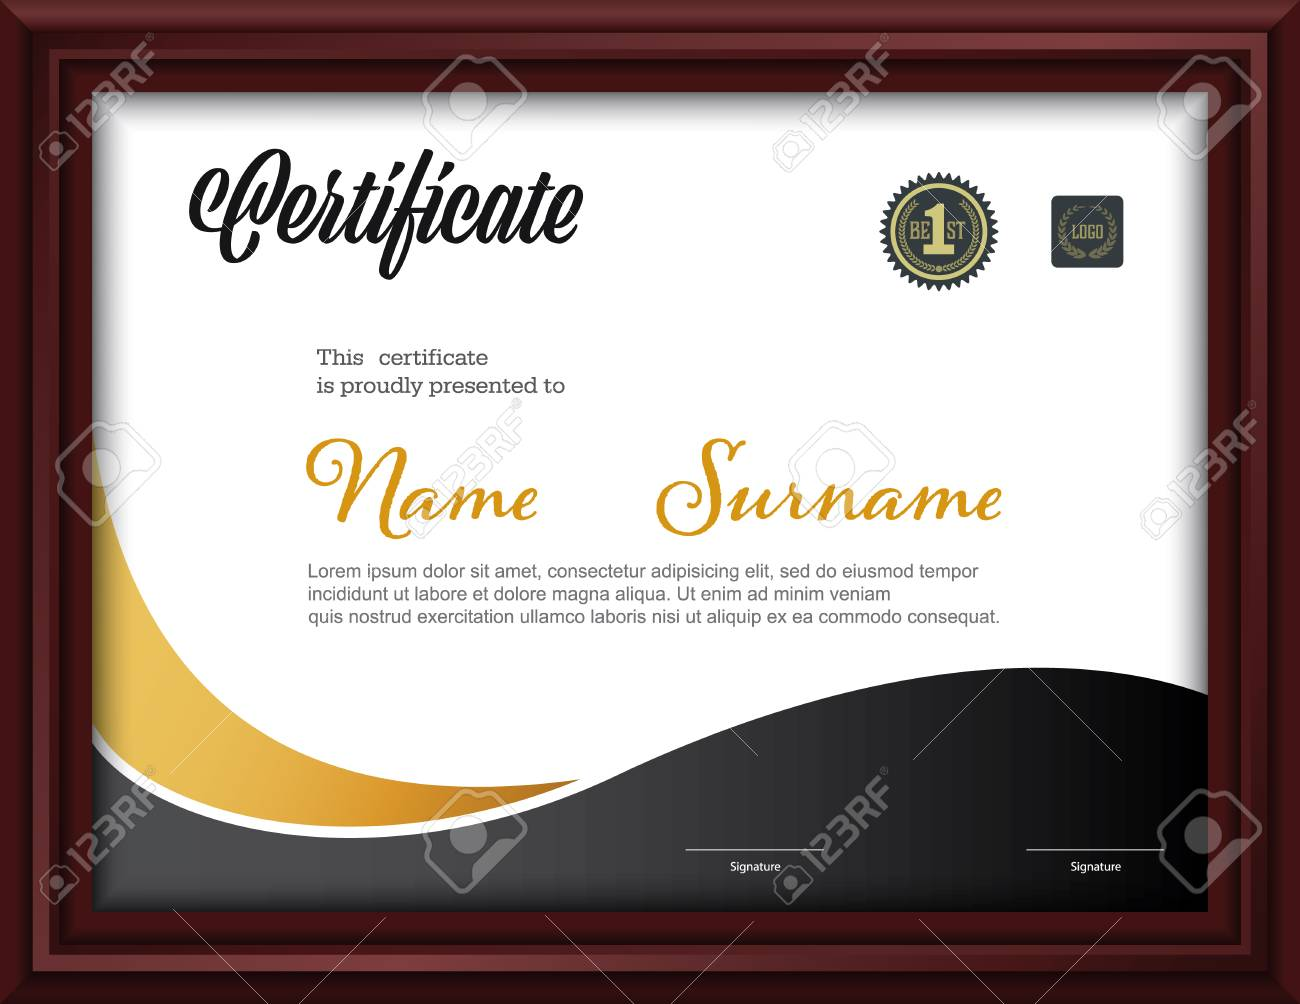 Certificate templateletter size diploma vector illustration certificate templateletter size diploma vector illustration stock vector 99732523 yadclub Gallery